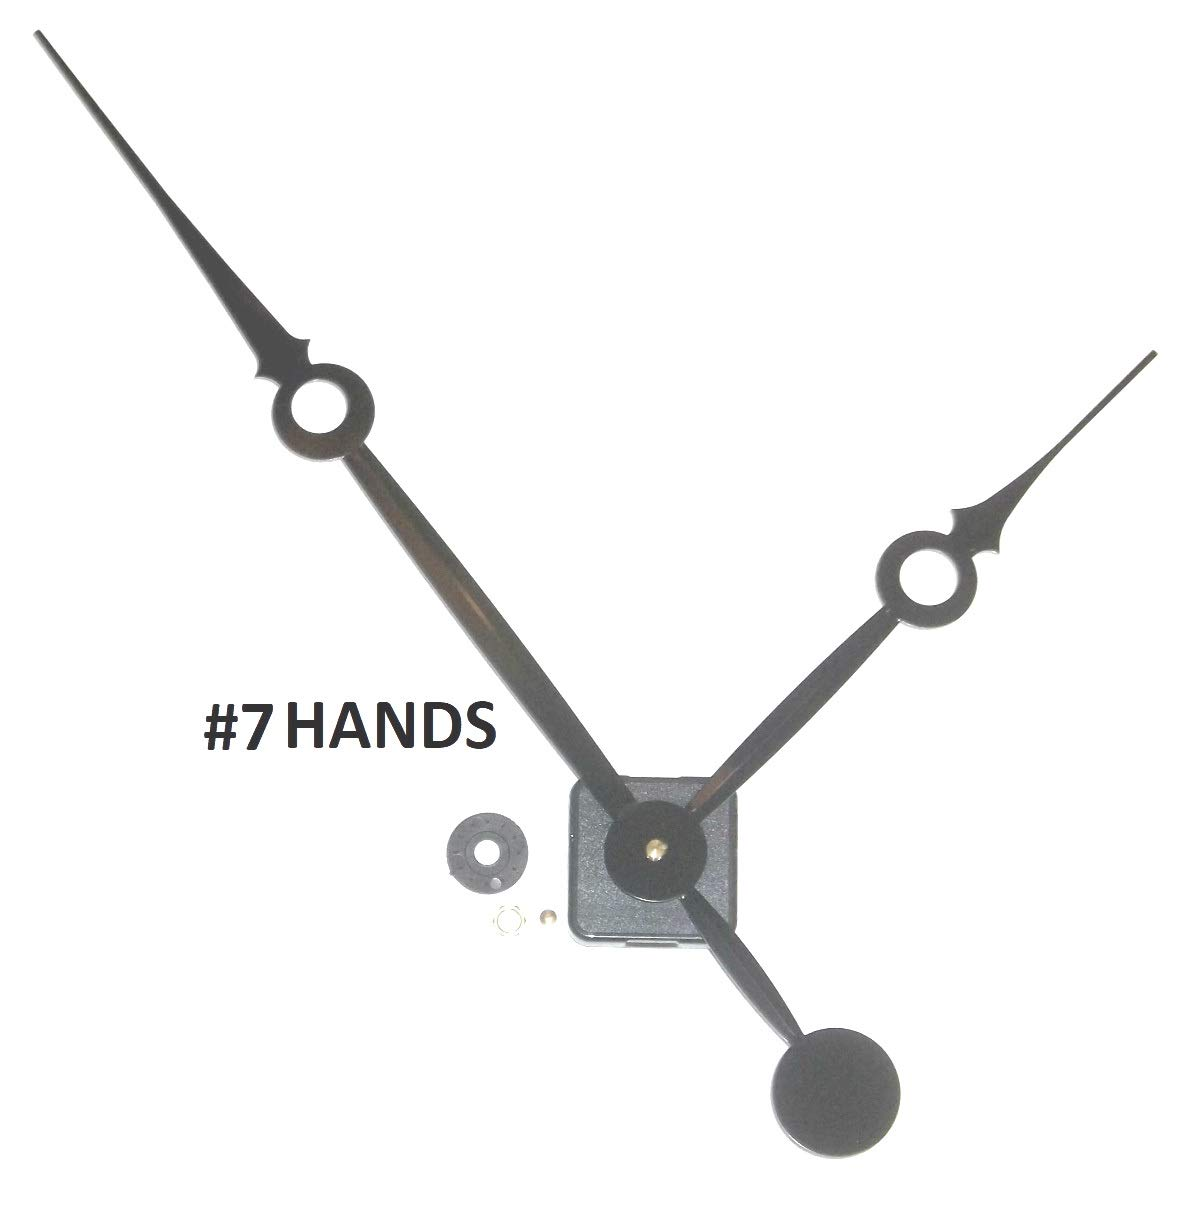 High Torque Clock Movement (Silent Sweep) Extended Shaft with 14 in. Long Balanced Black Fancy Sword Hands (No7)